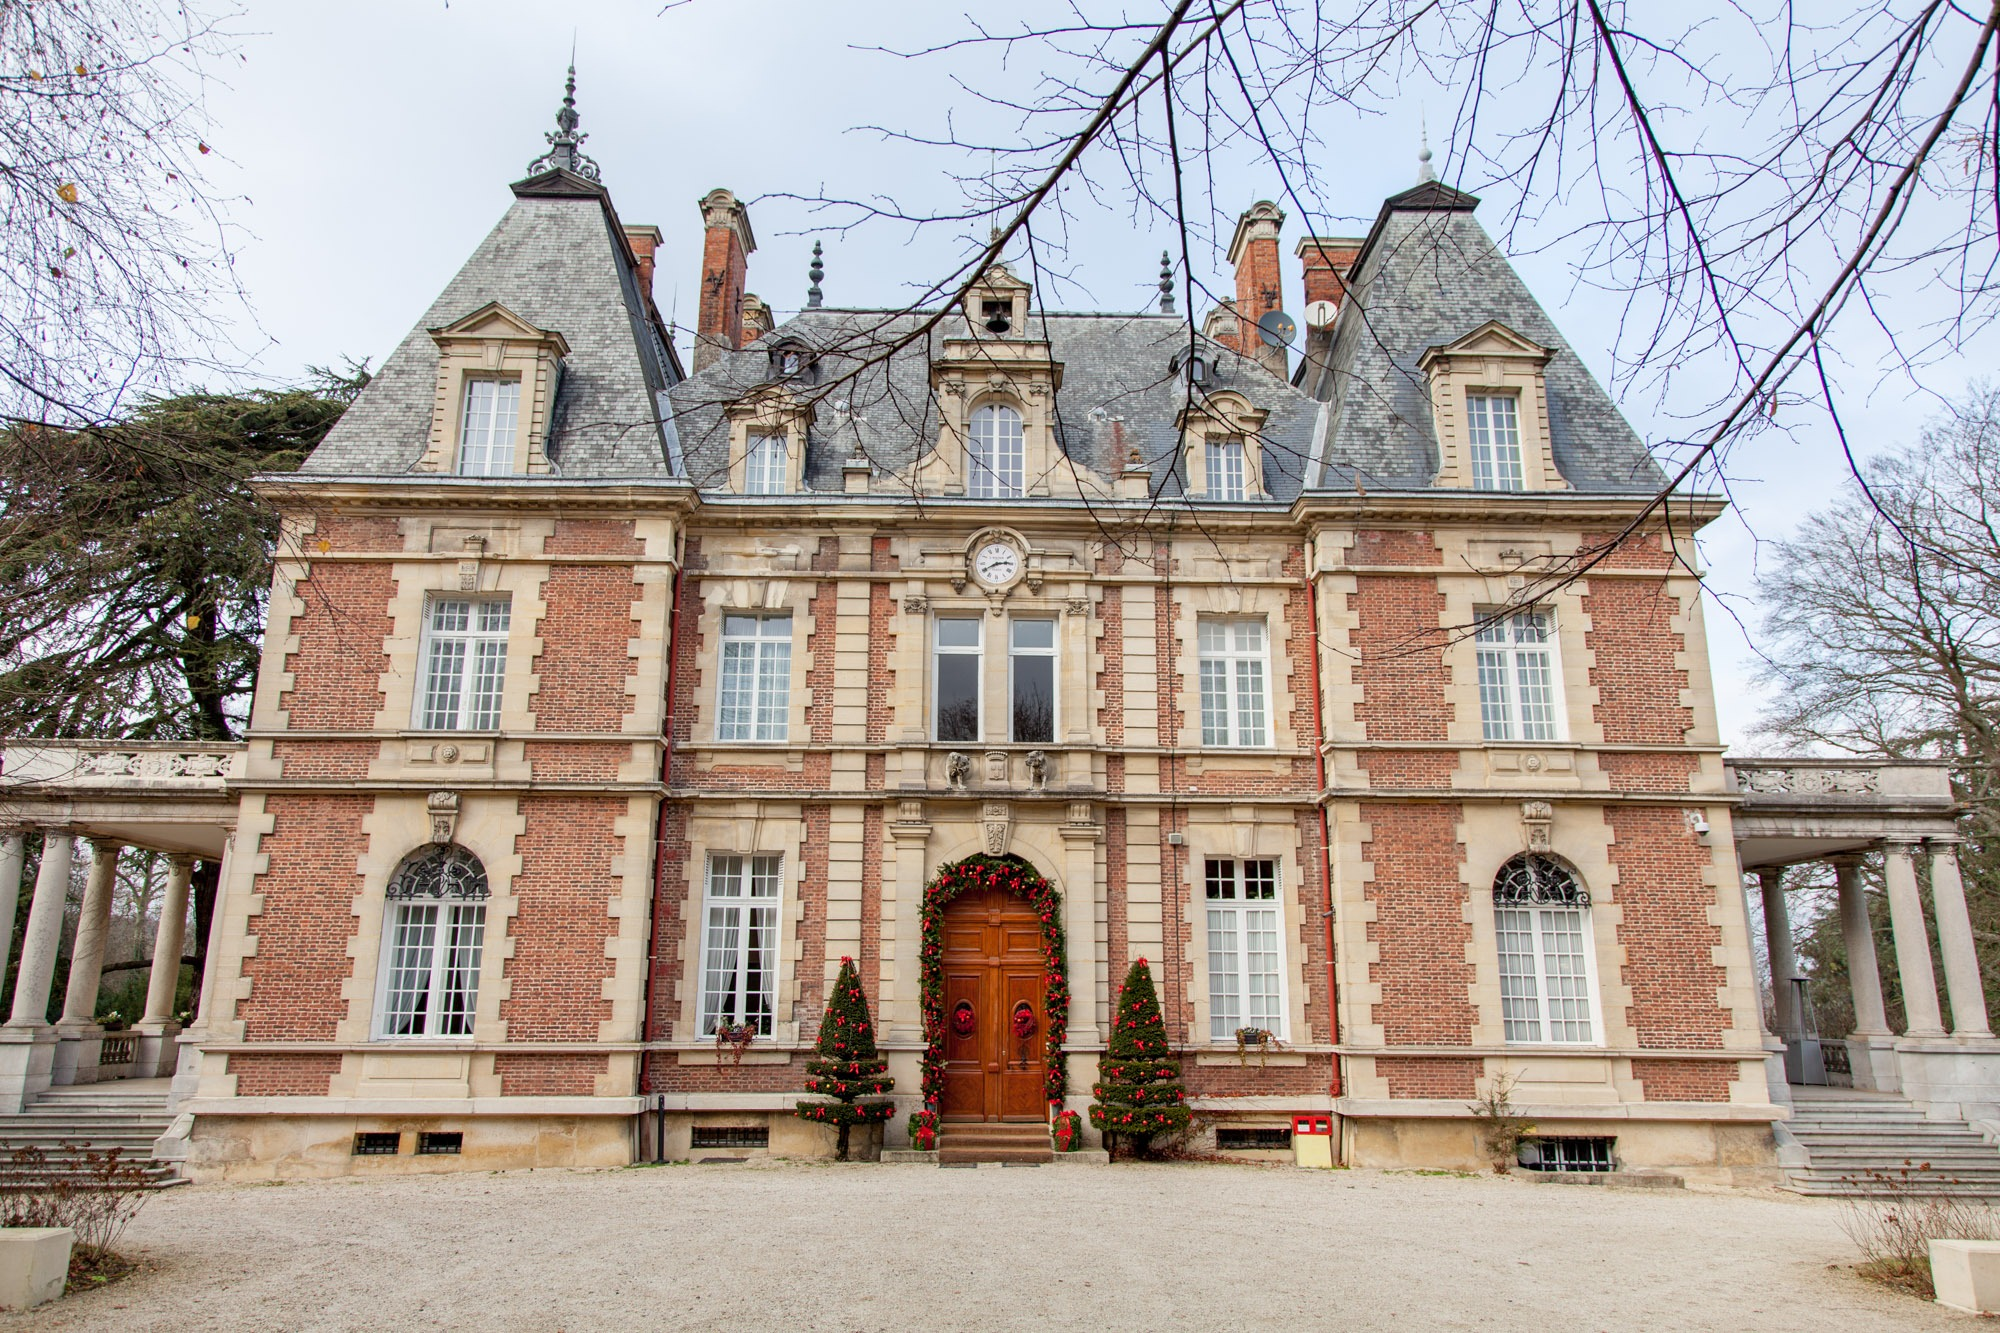 5 unusual accommodation options for your next stay in France